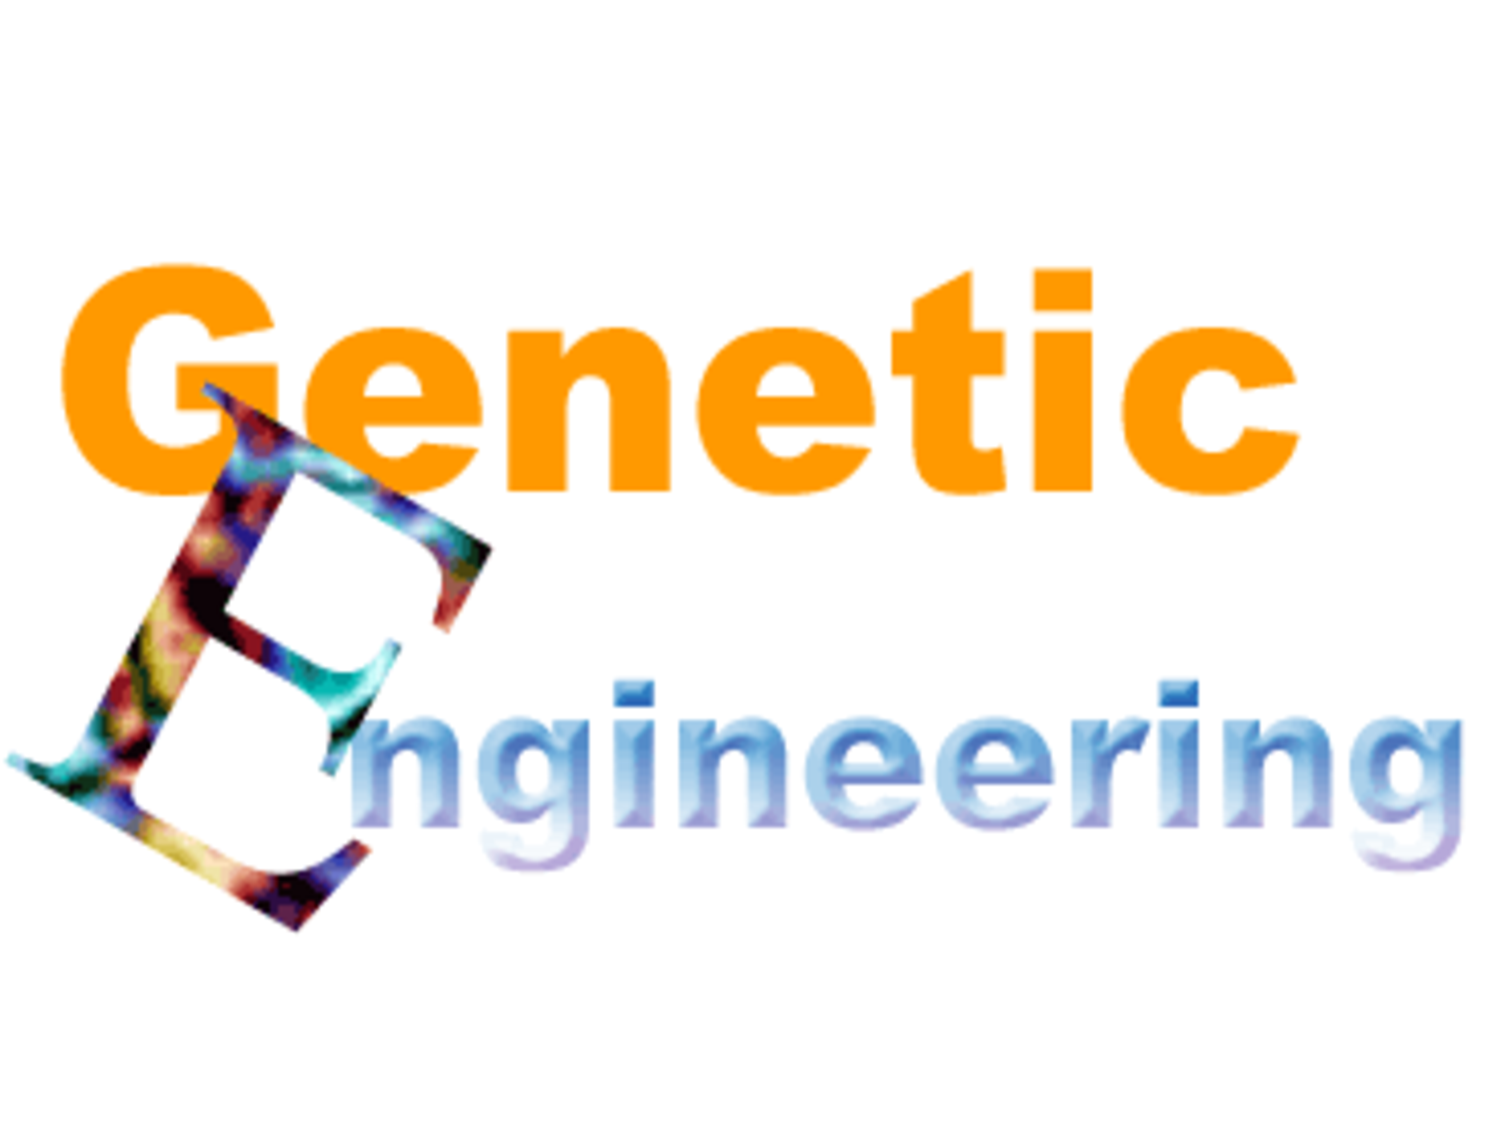 Bachelor of Technology (BTech Genetic Engineering)